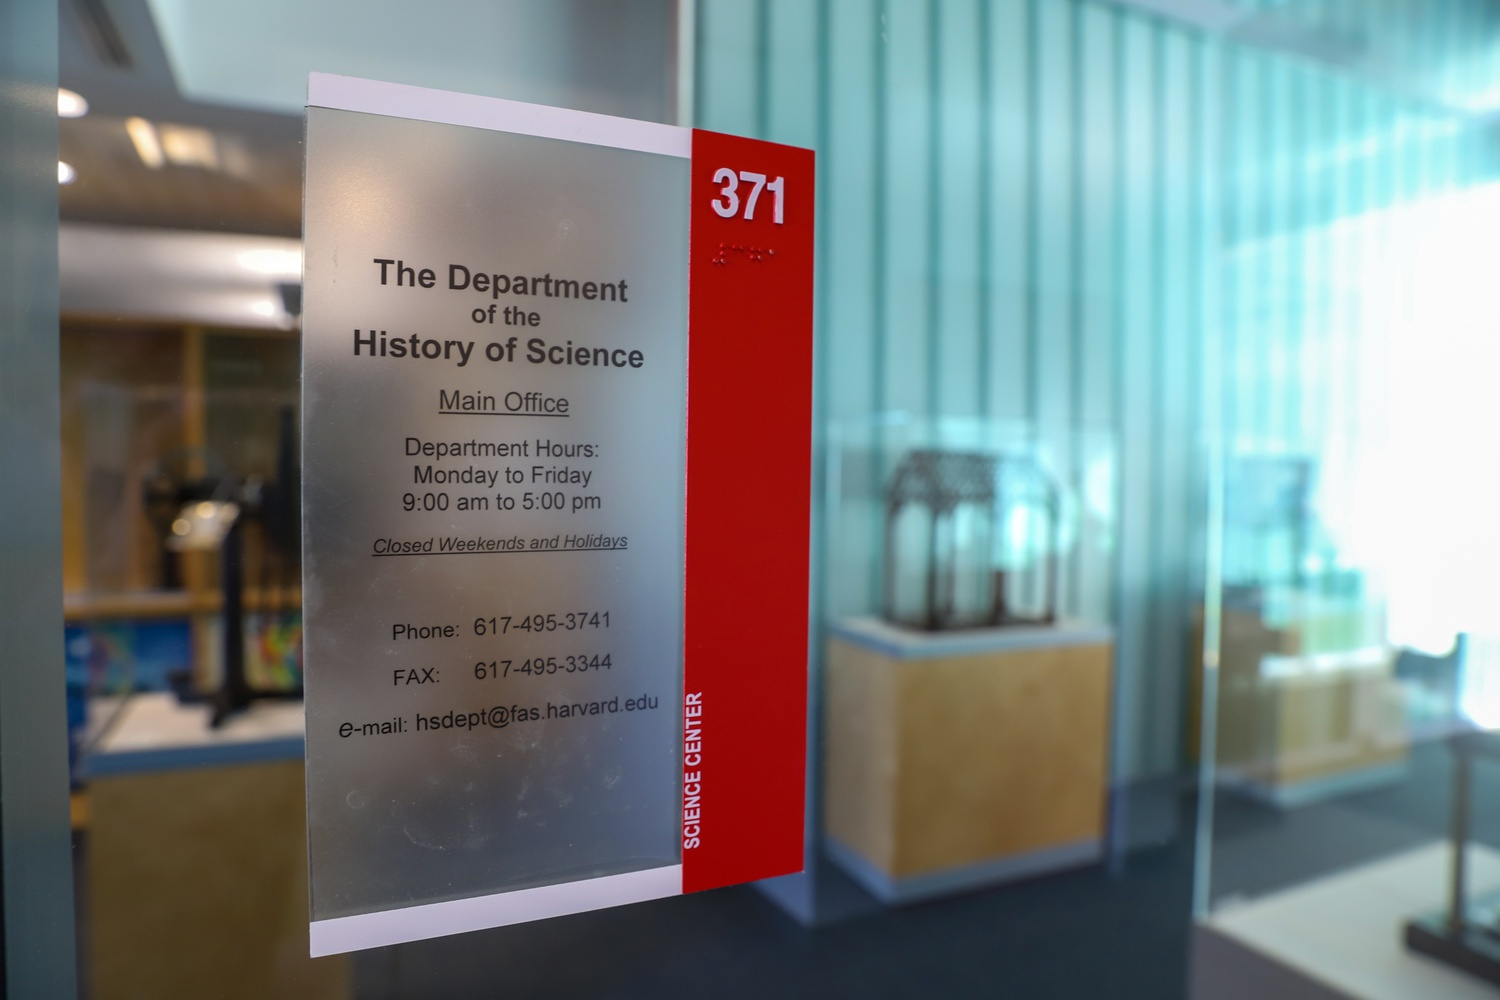 The History of Science Department, located in Science Center Room 371, aims to study science, technology, and medicine in their historical and social contexts.